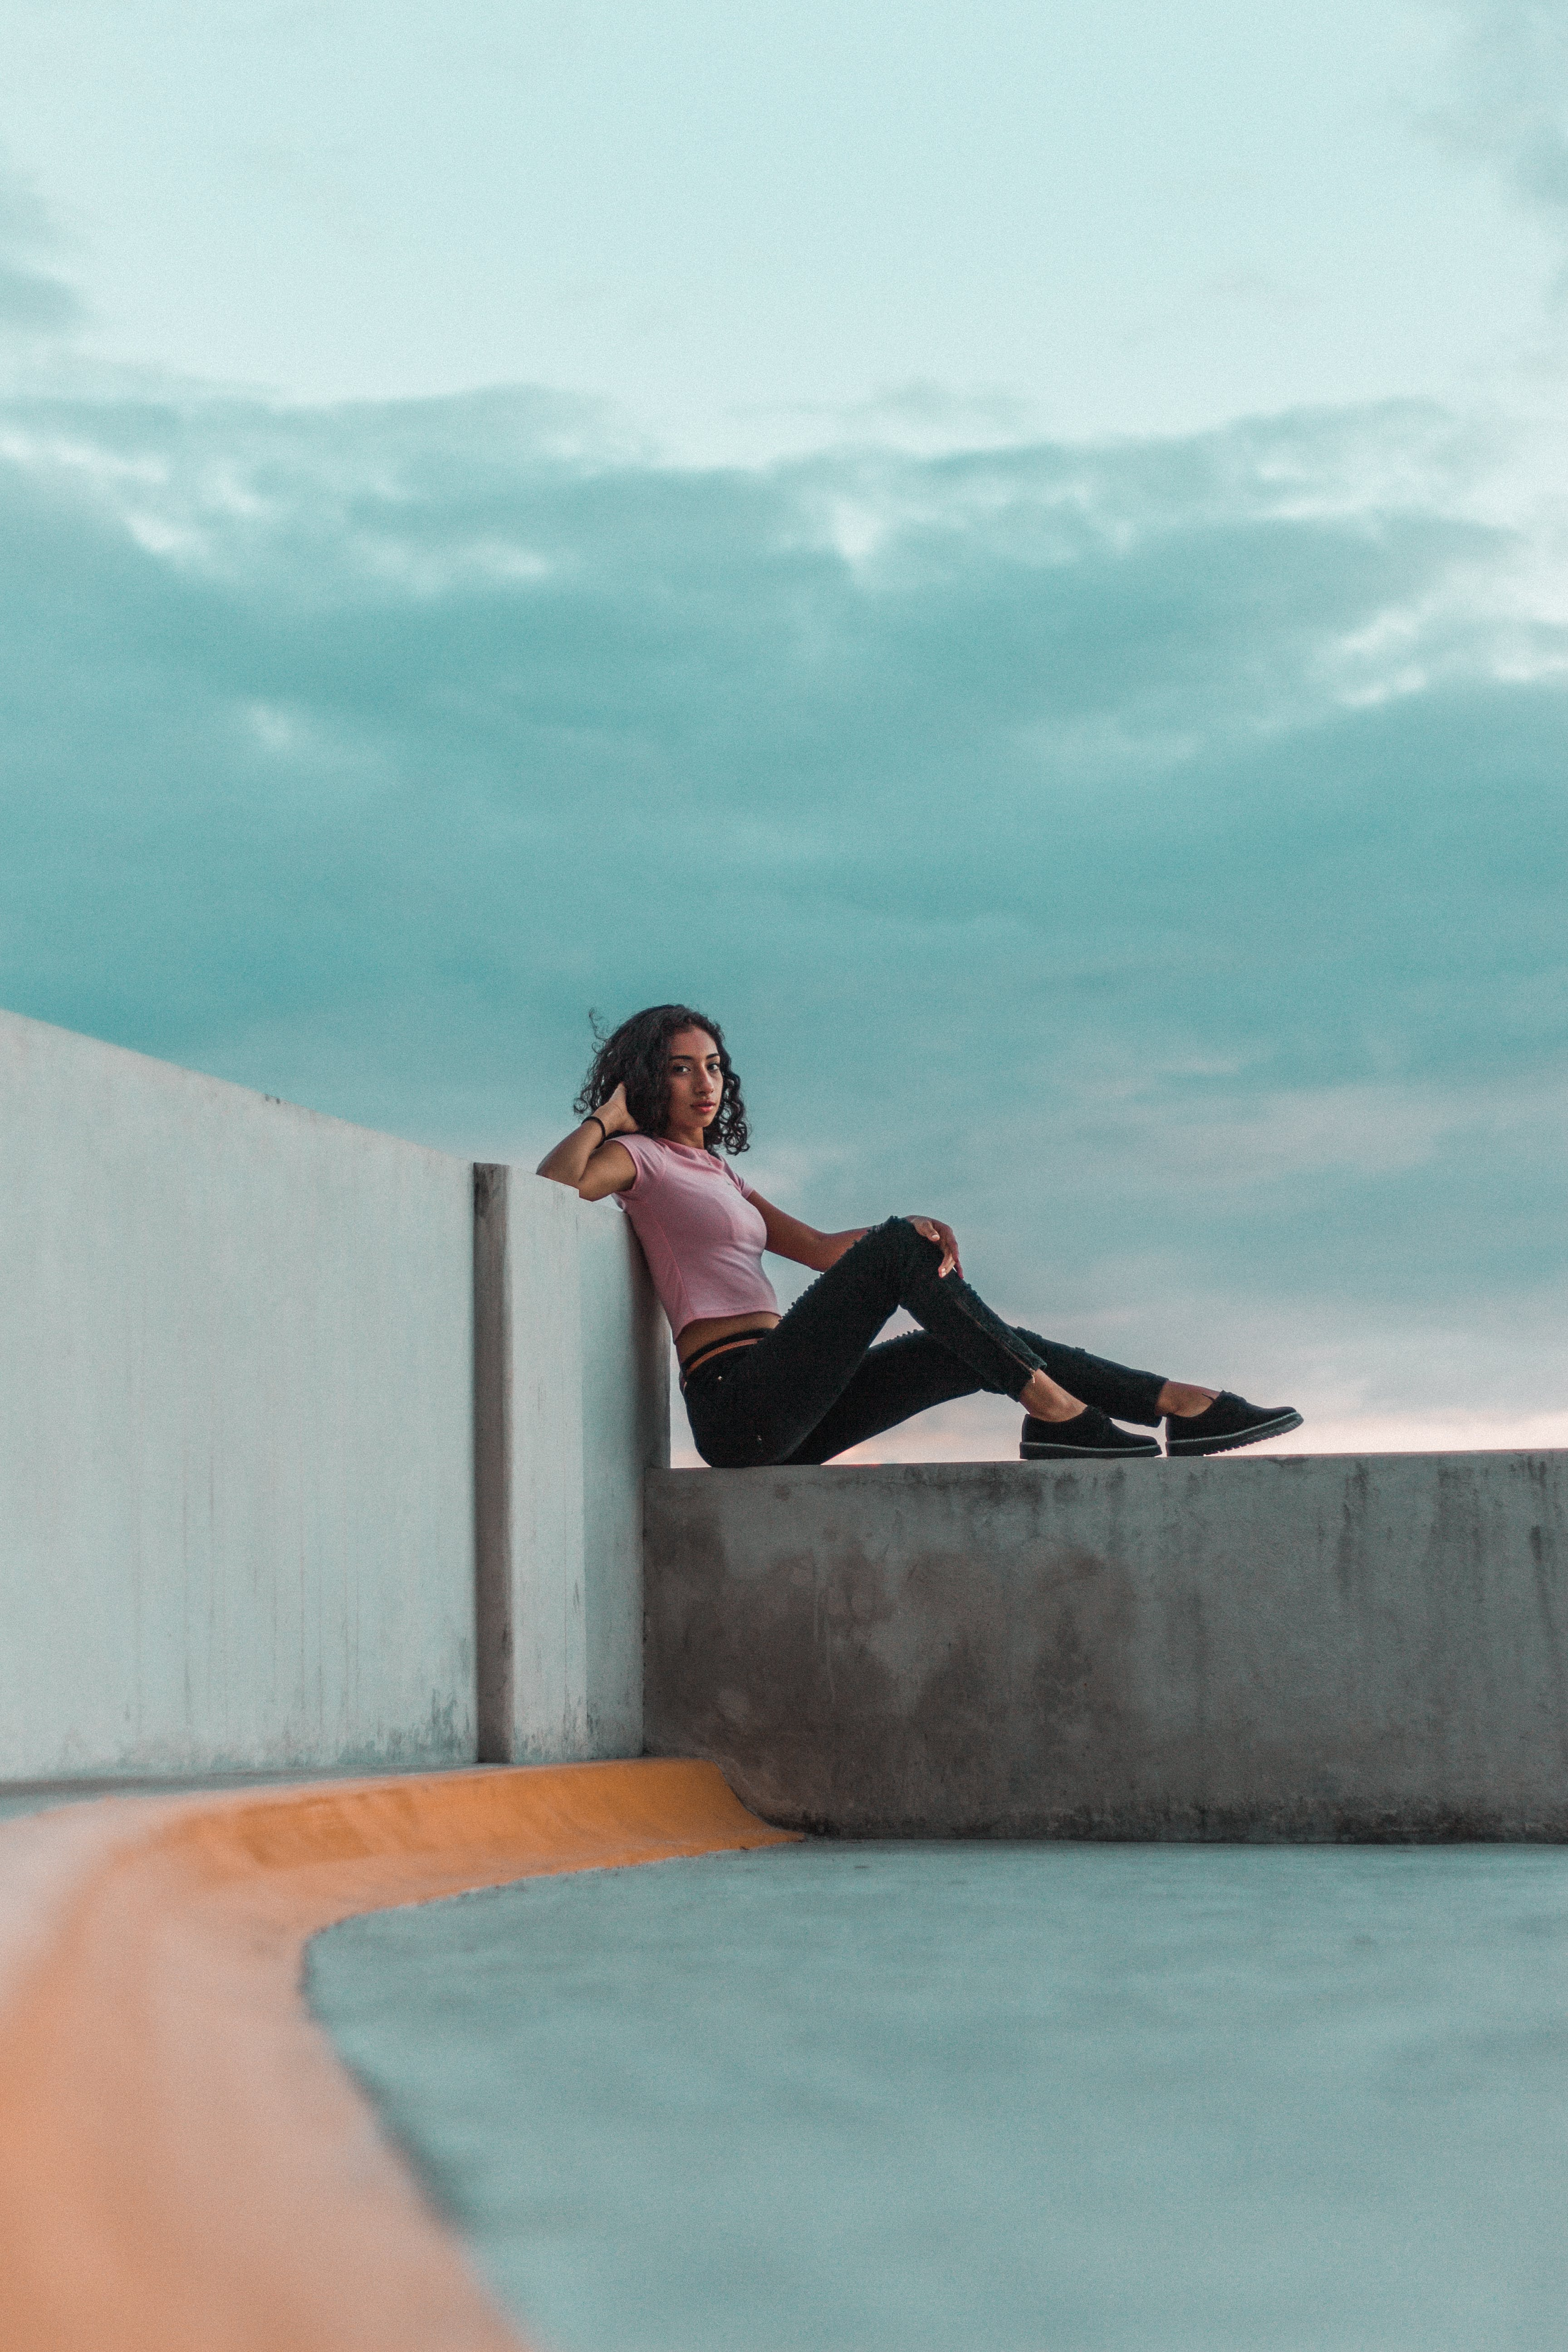 Woman Wearing T-shirt and Pants Leaning on Ledge